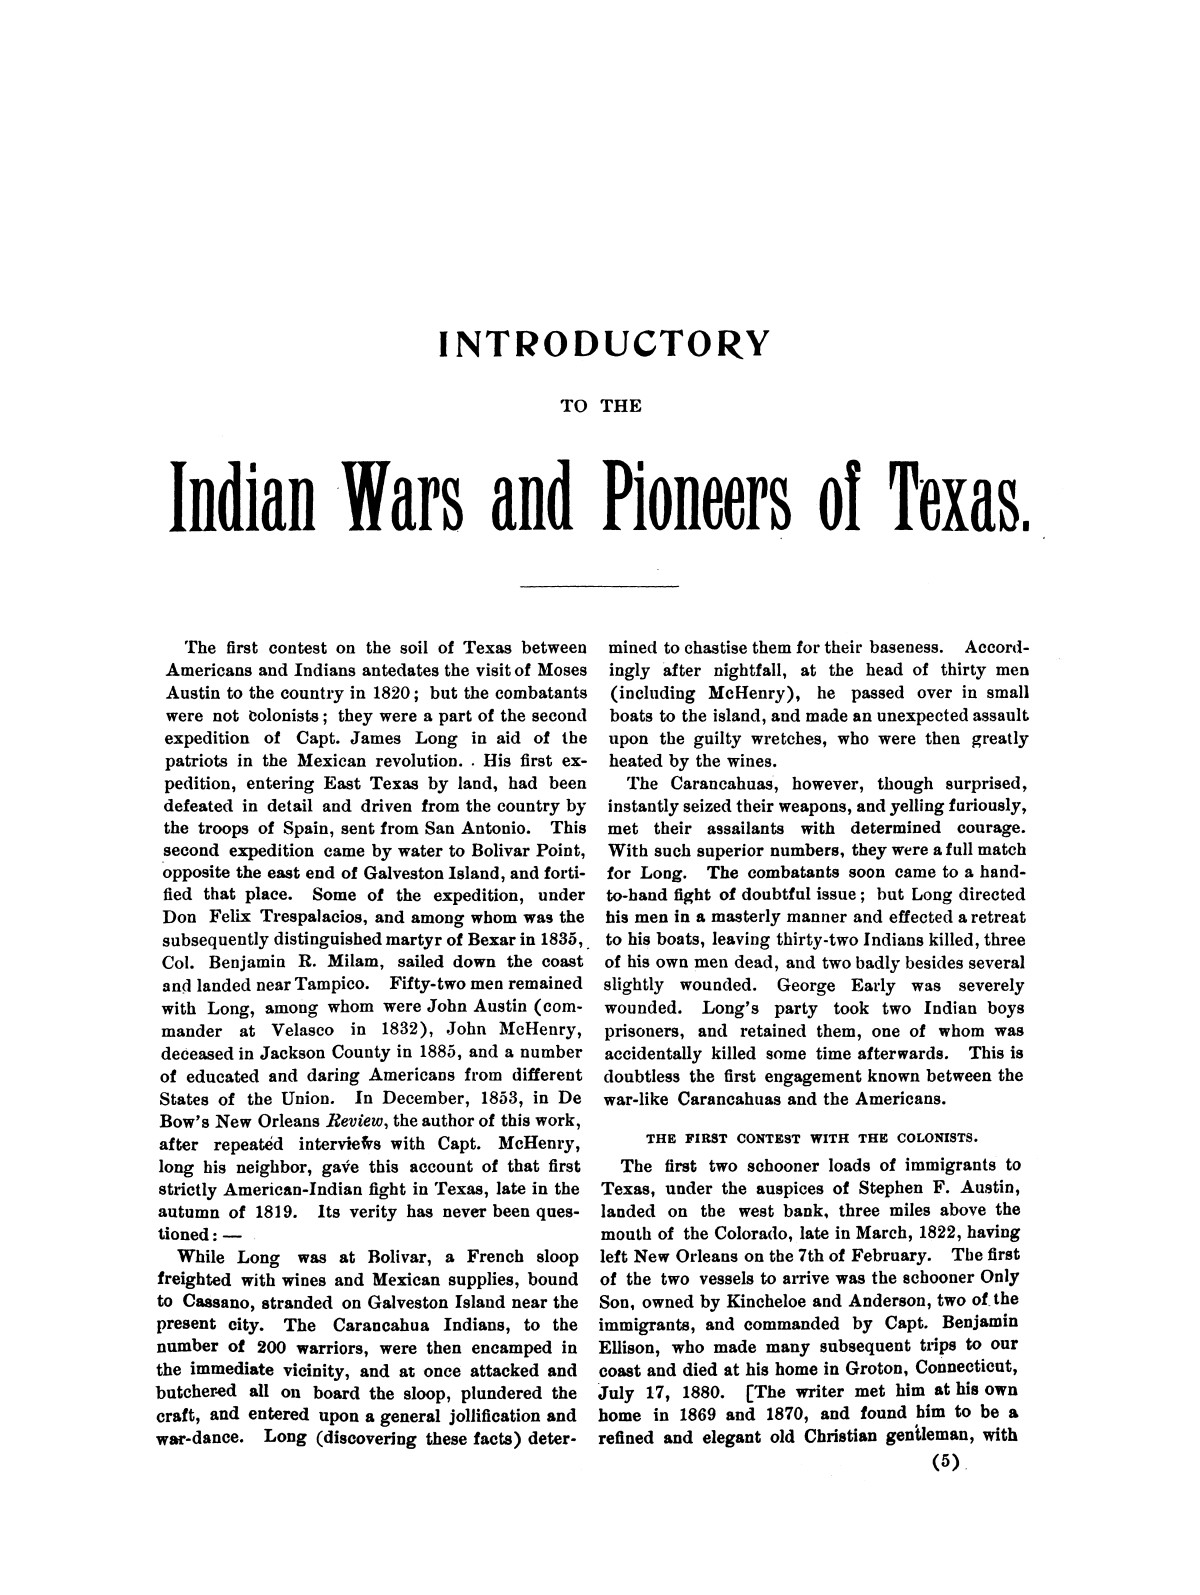 Indian wars and pioneers of Texas / by John Henry Brown.                                                                                                      [Sequence #]: 9 of 894